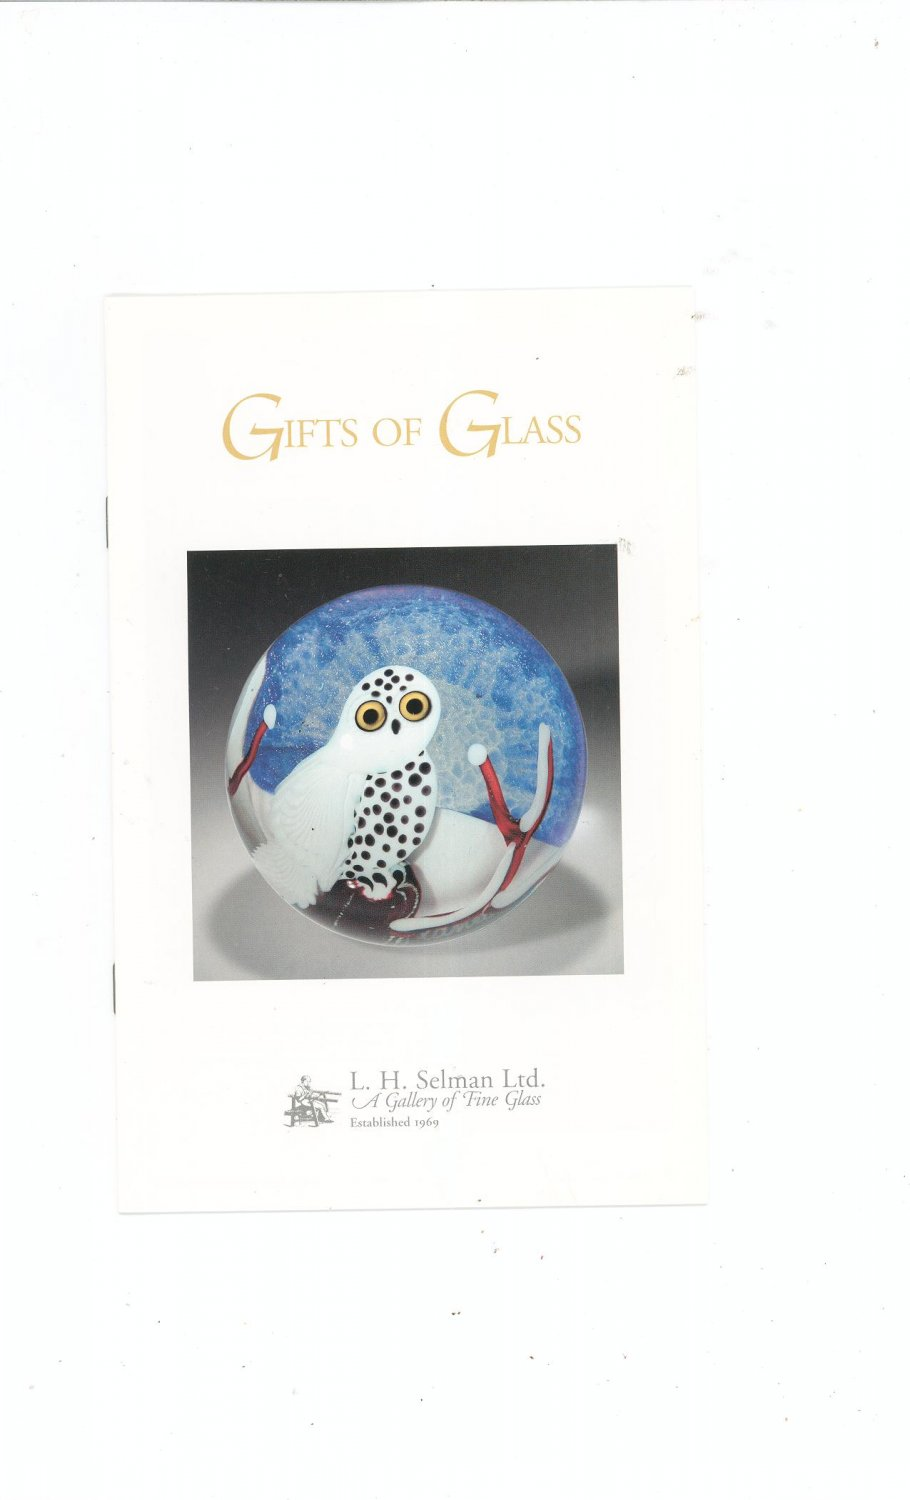 Gifts Of Glass Catalog / Brochure by L. H. Selman Ltd. Paperweights